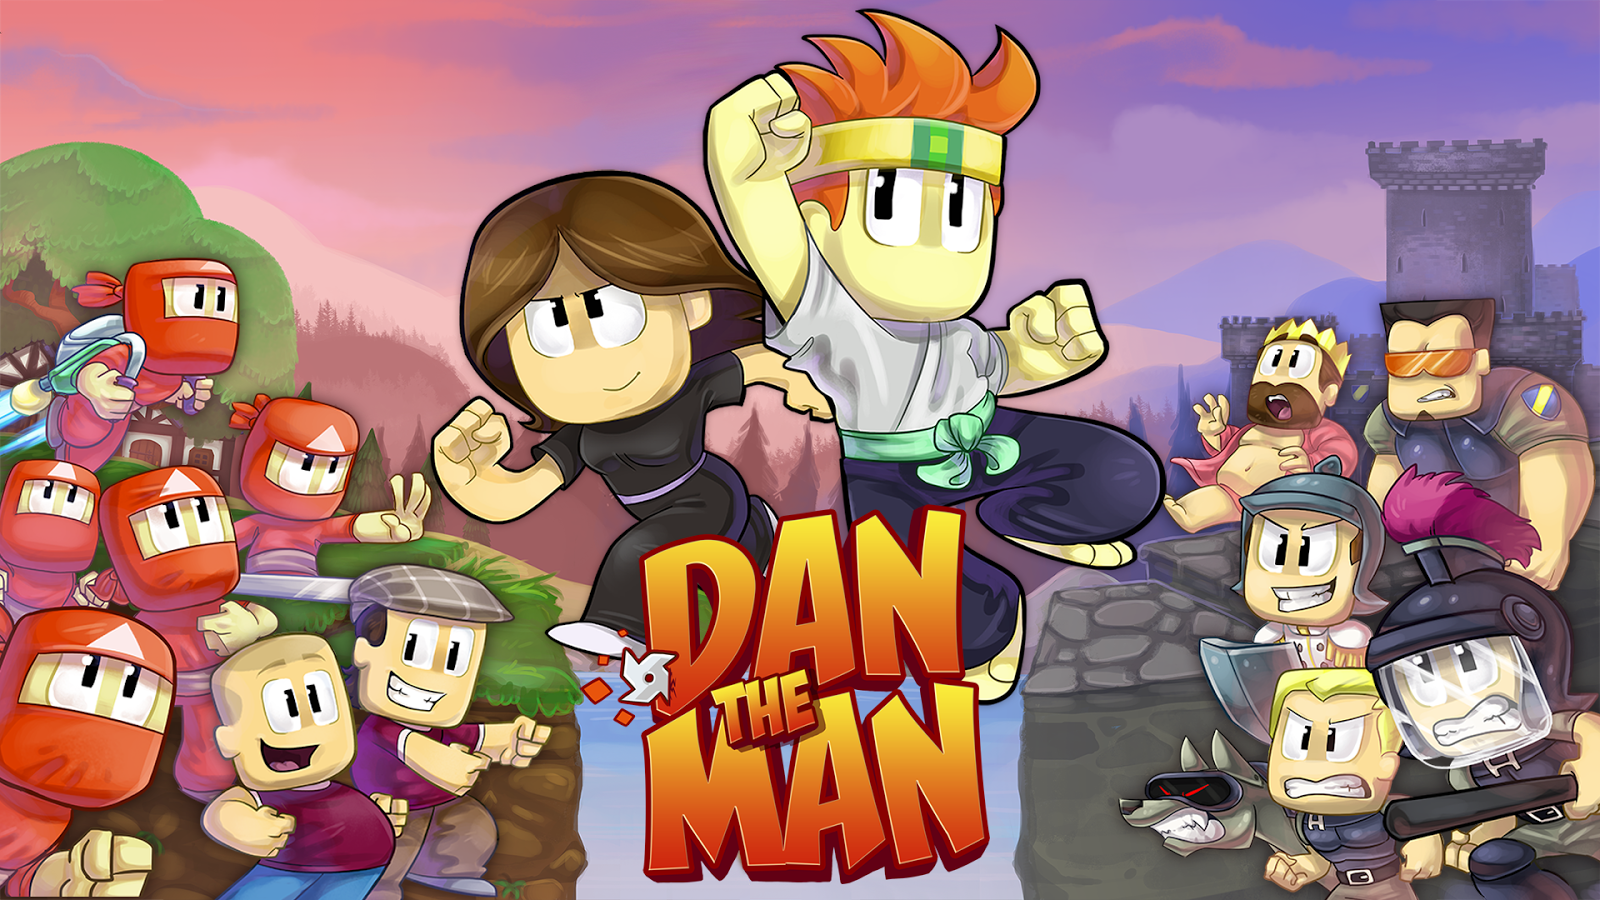 Dan the man android apps on google play for Da n